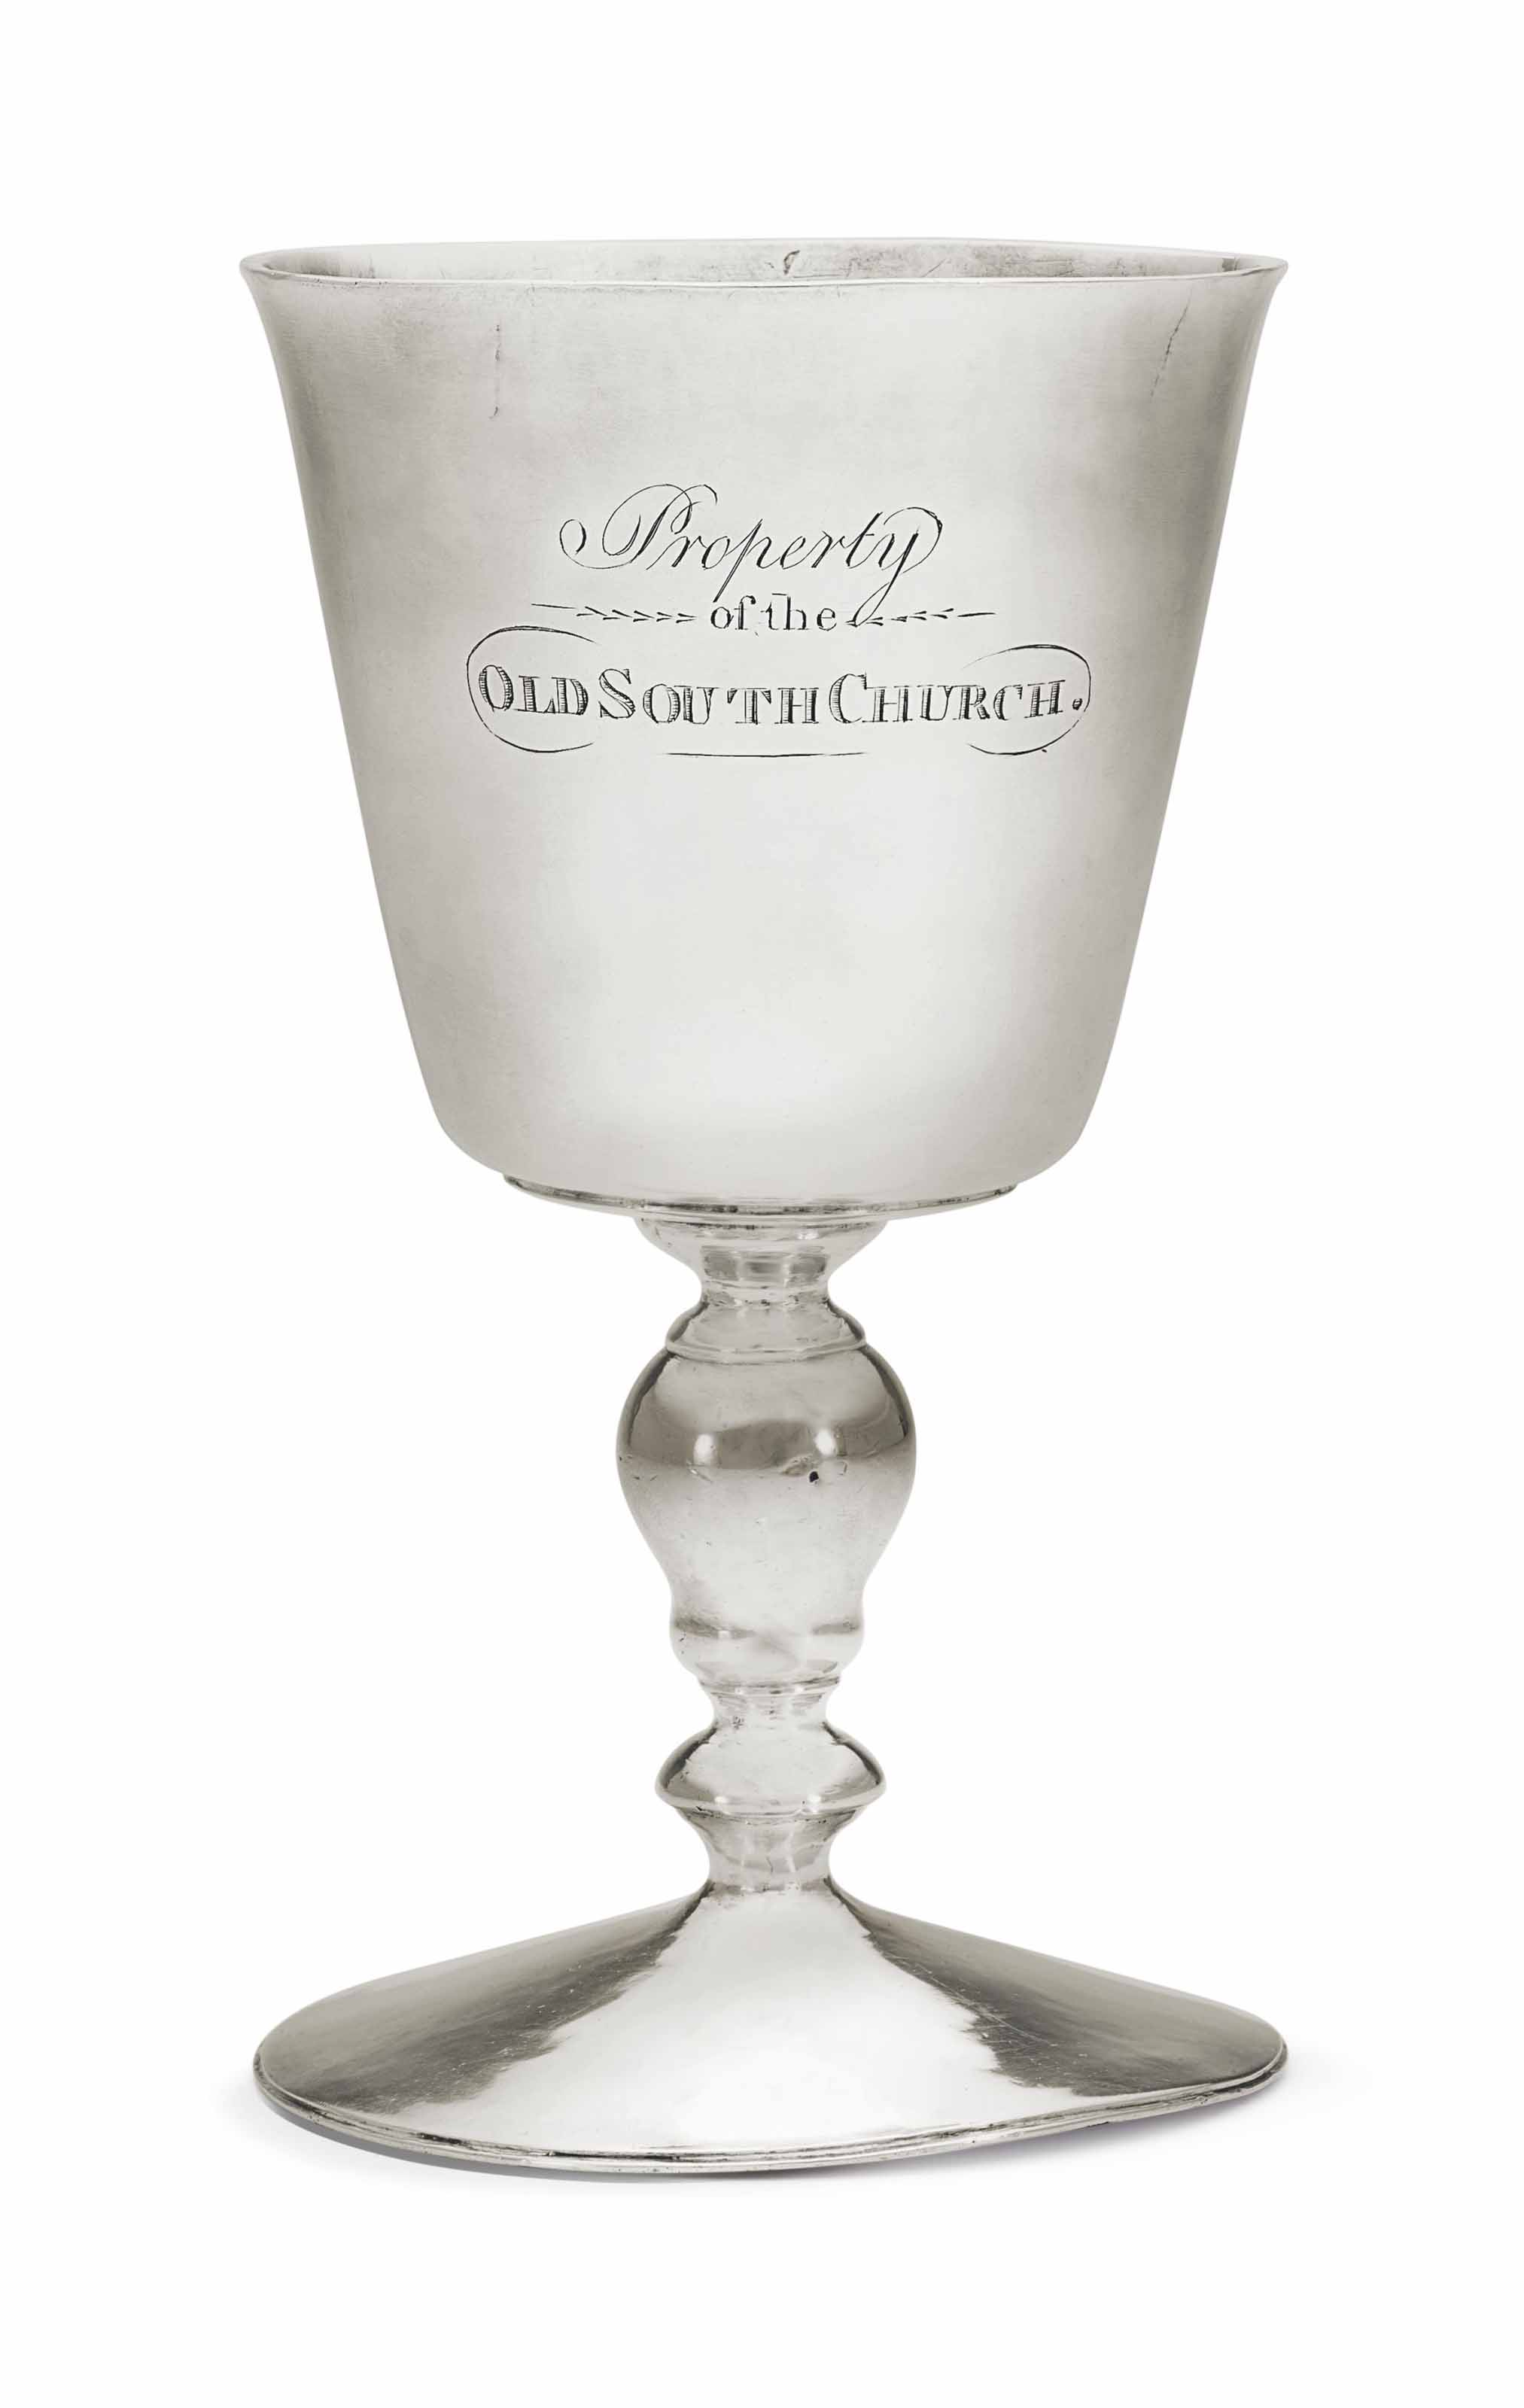 AN IMPORTANT SILVER WINE CUP